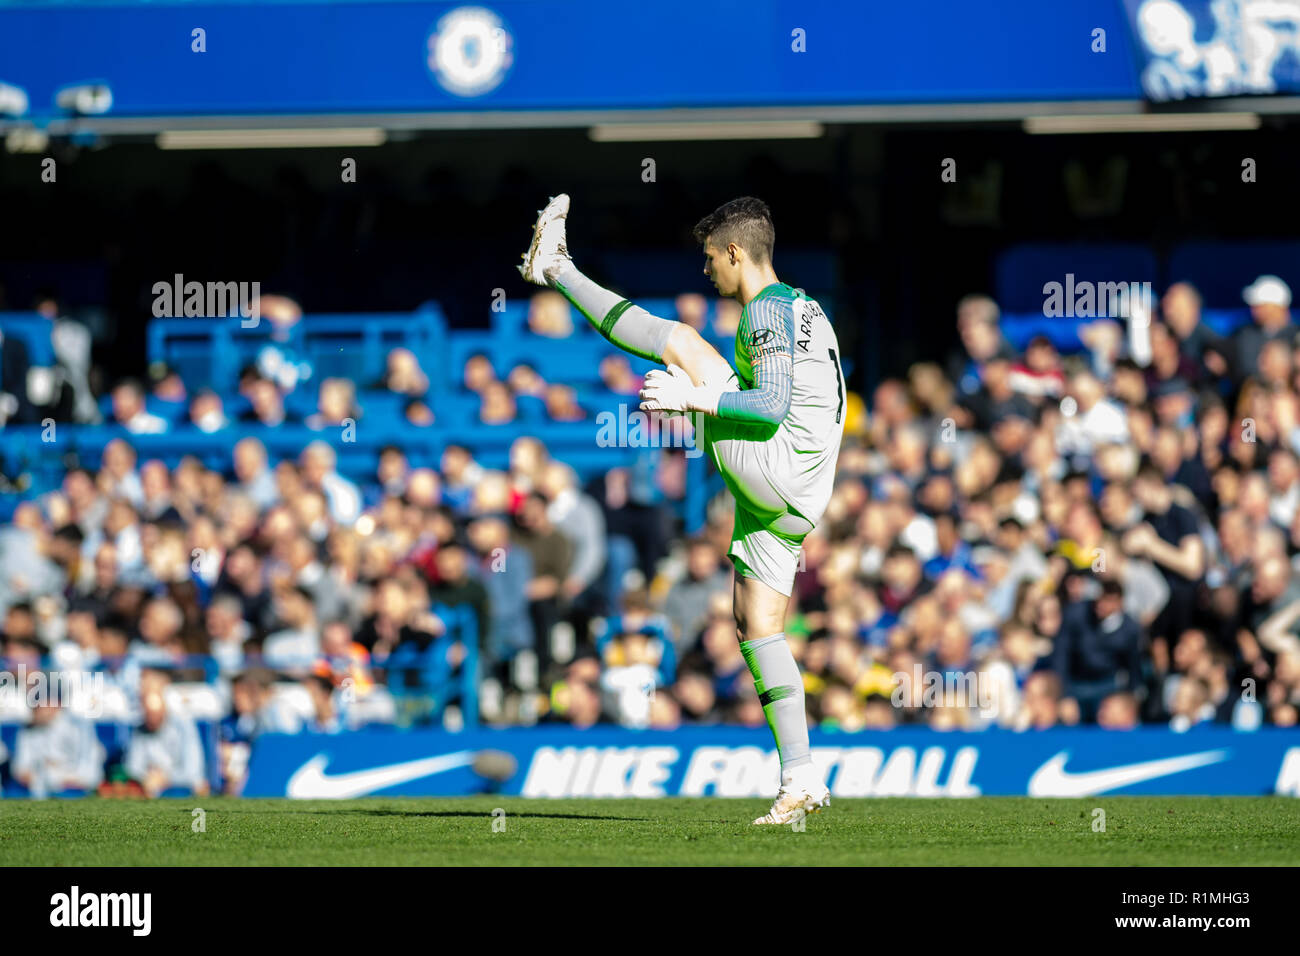 LONDON, ENGLAND - OCTOBER 20: Kepa Arrizabalaga of Chelsea FC during the Premier League match between Chelsea FC and Manchester United at Stamford Bridge on October 20, 2018 in London, United Kingdom. (Photo by Sebastian Frej/MB Media/Getty Images) - Stock Image